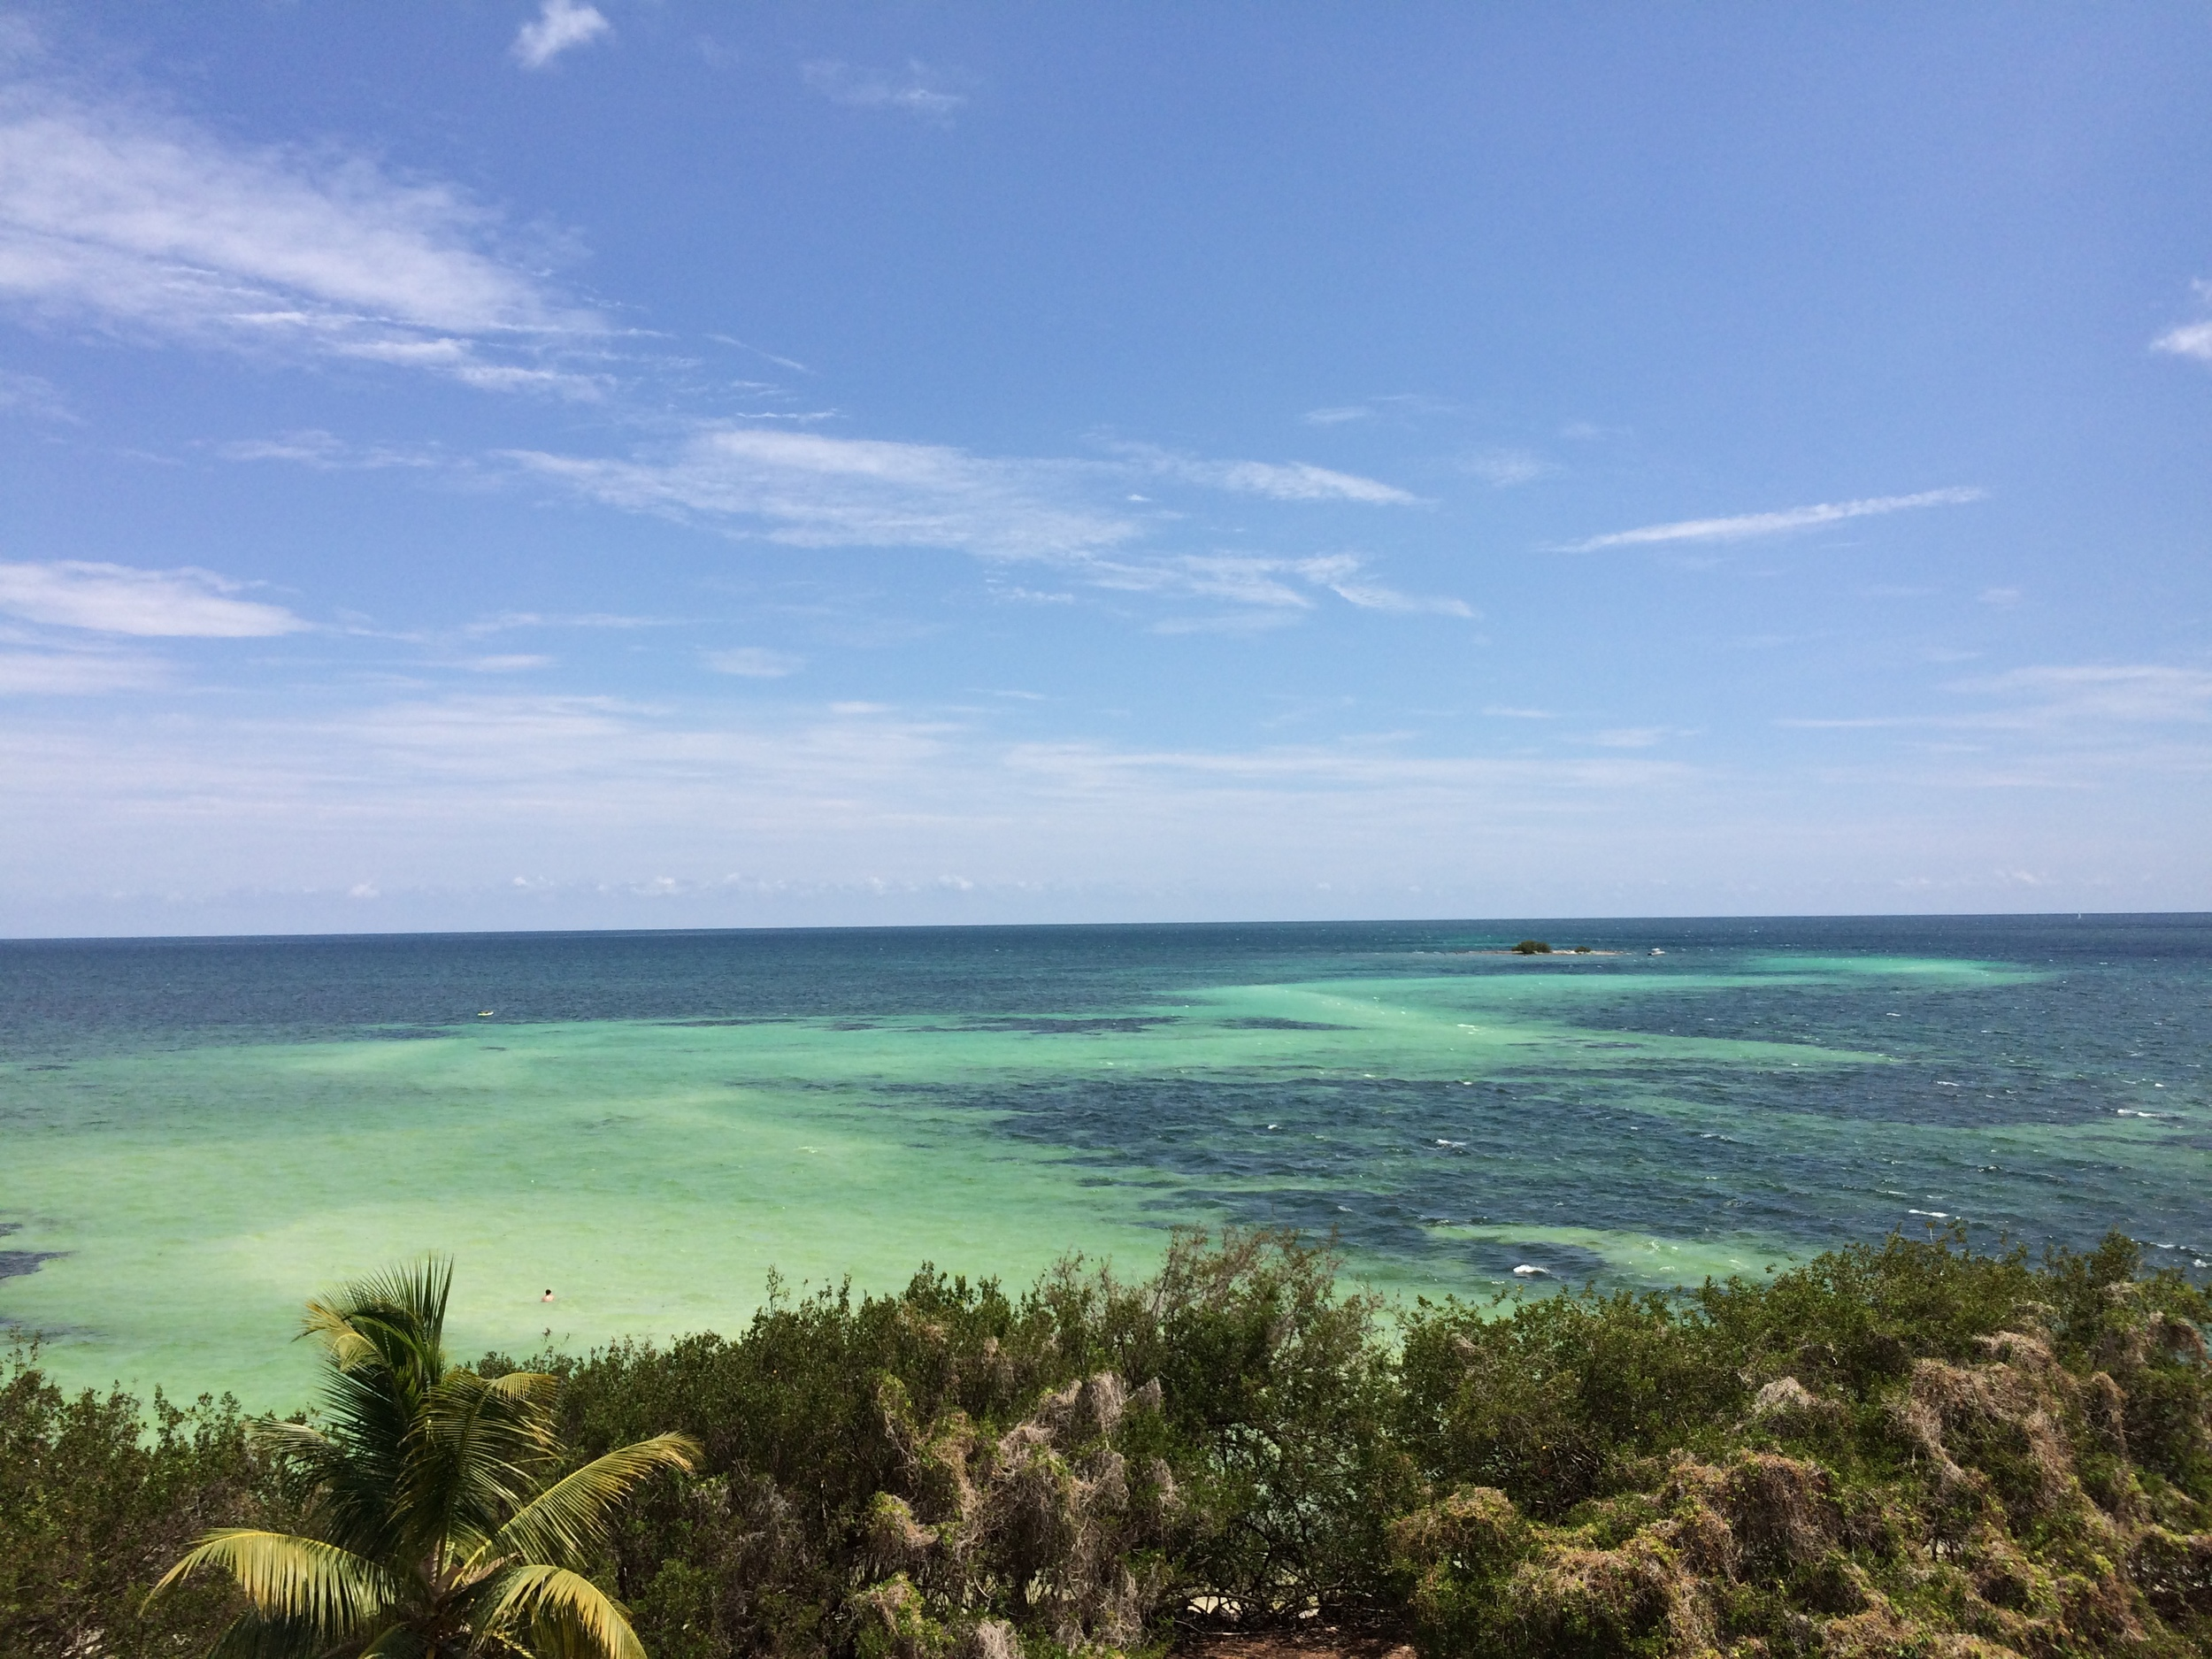 The view from Bahia Honda in the keys. There are reports of Common Mynas as far south as Key West.